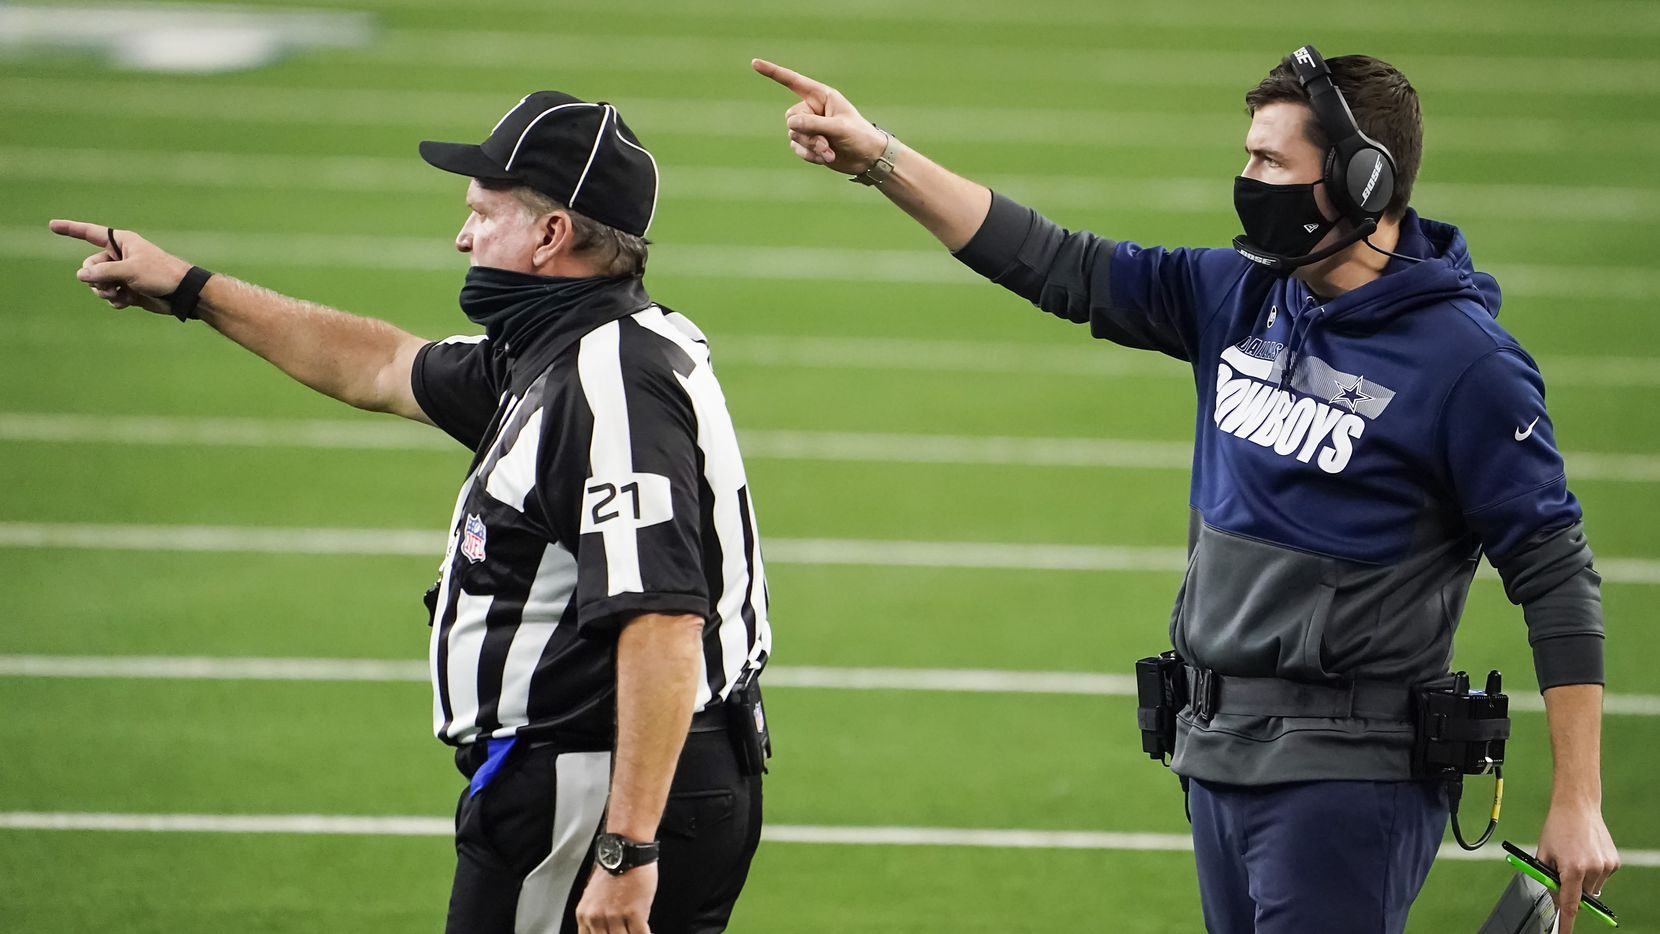 Cowboys offensive coordinator Kellen Moore looks for a call during the fourth quarter of a game against the Washington Football Team at AT&T Stadium on Thursday, Nov. 26, 2020, in Arlington.